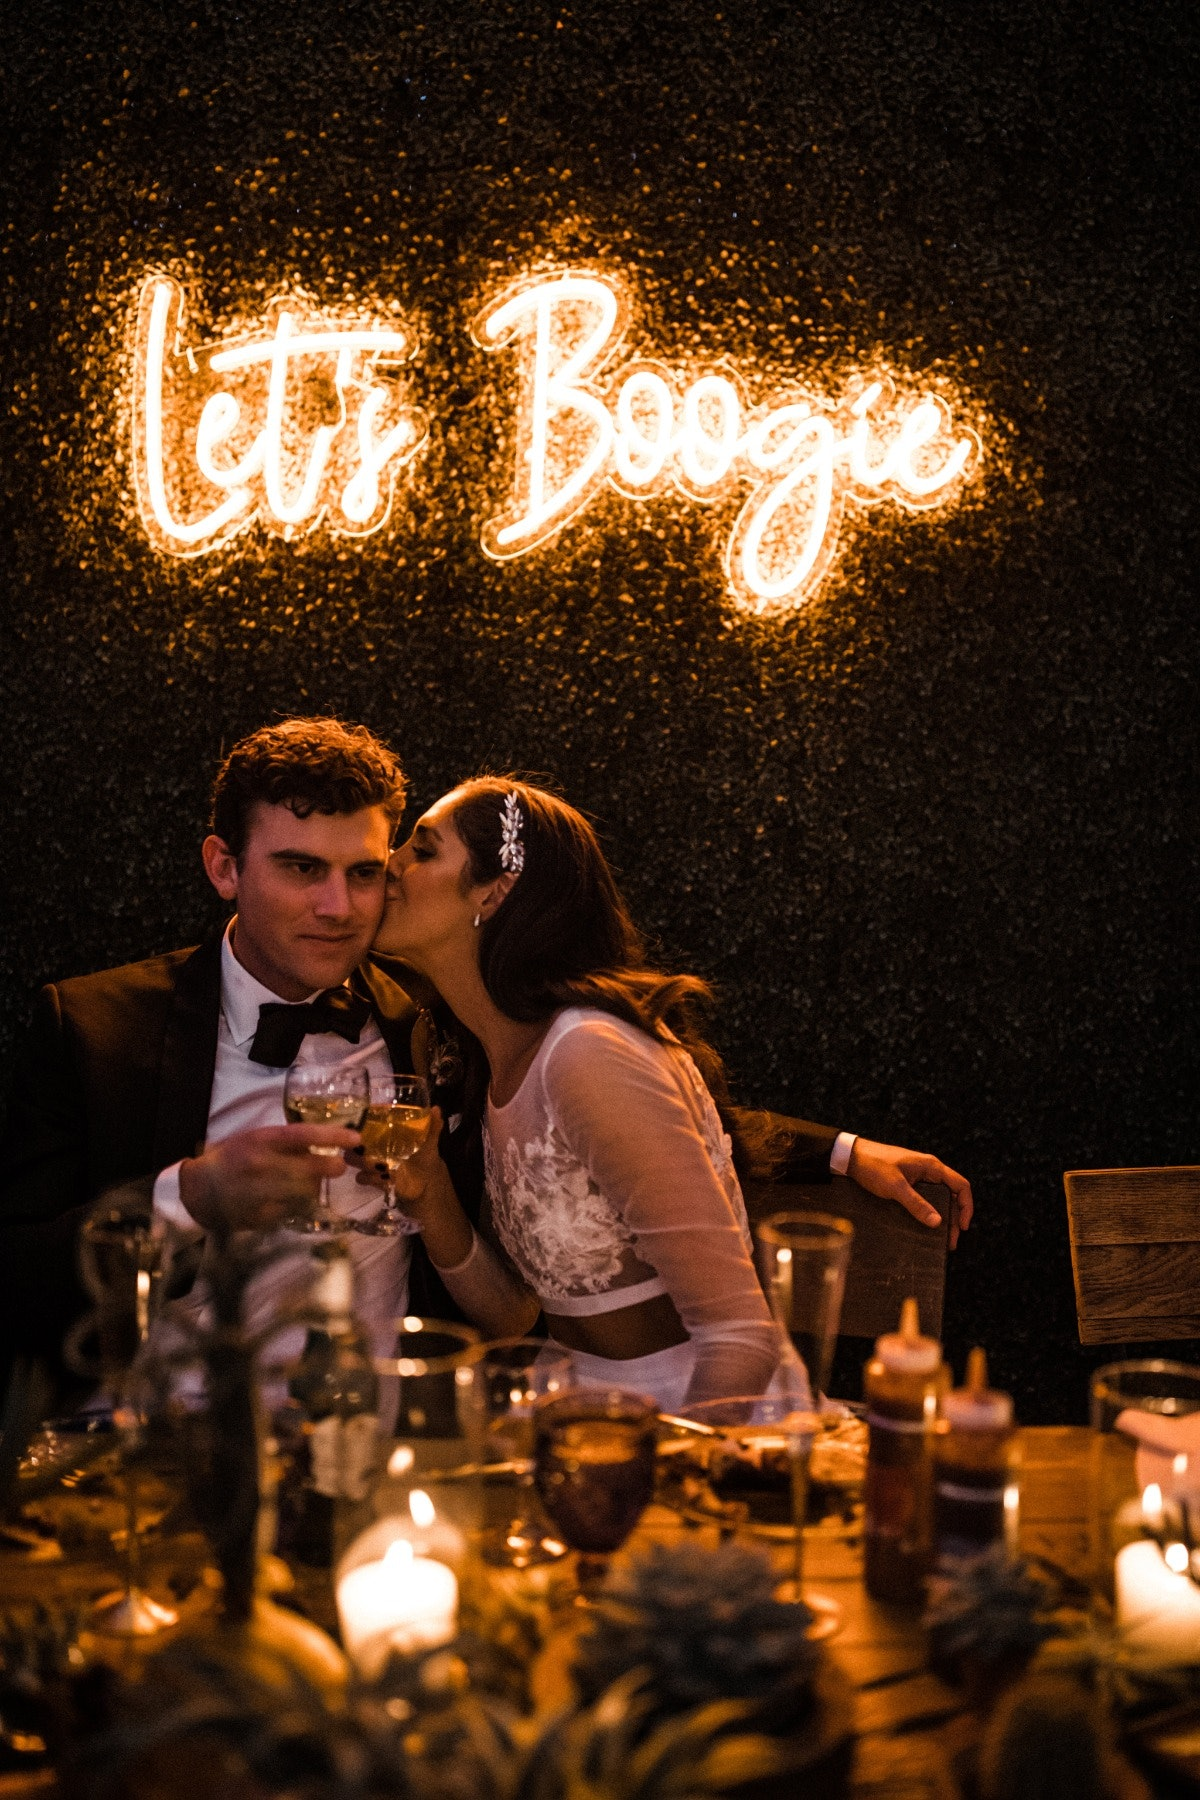 Bride and groom kissing sitting in front of a neon sign saying 'Let's Boogie'